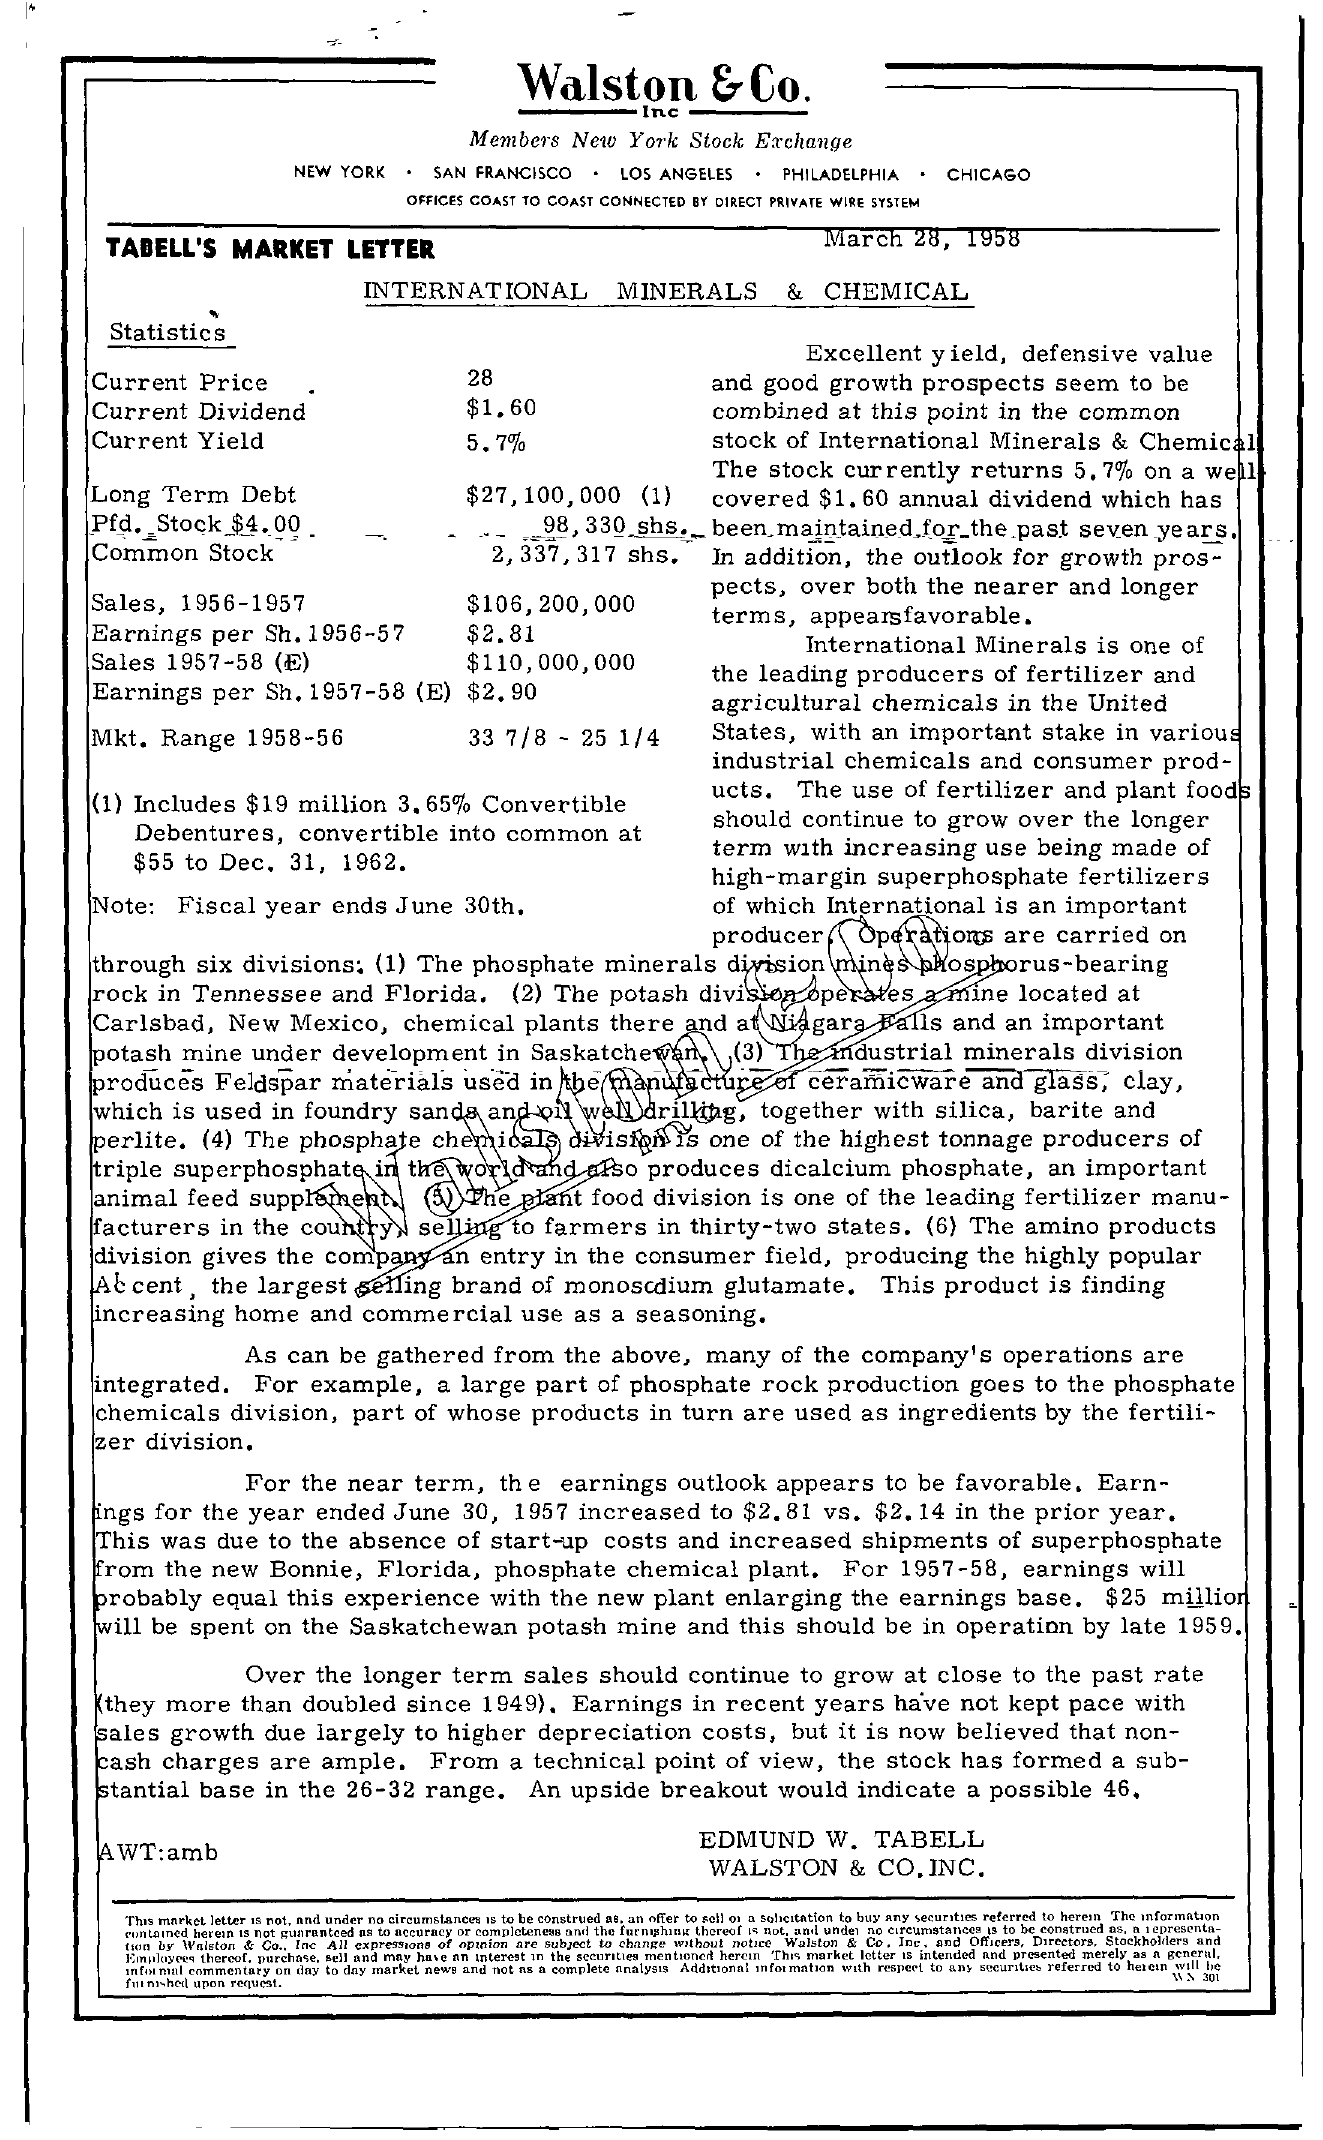 Tabell's Market Letter - March 28, 1958